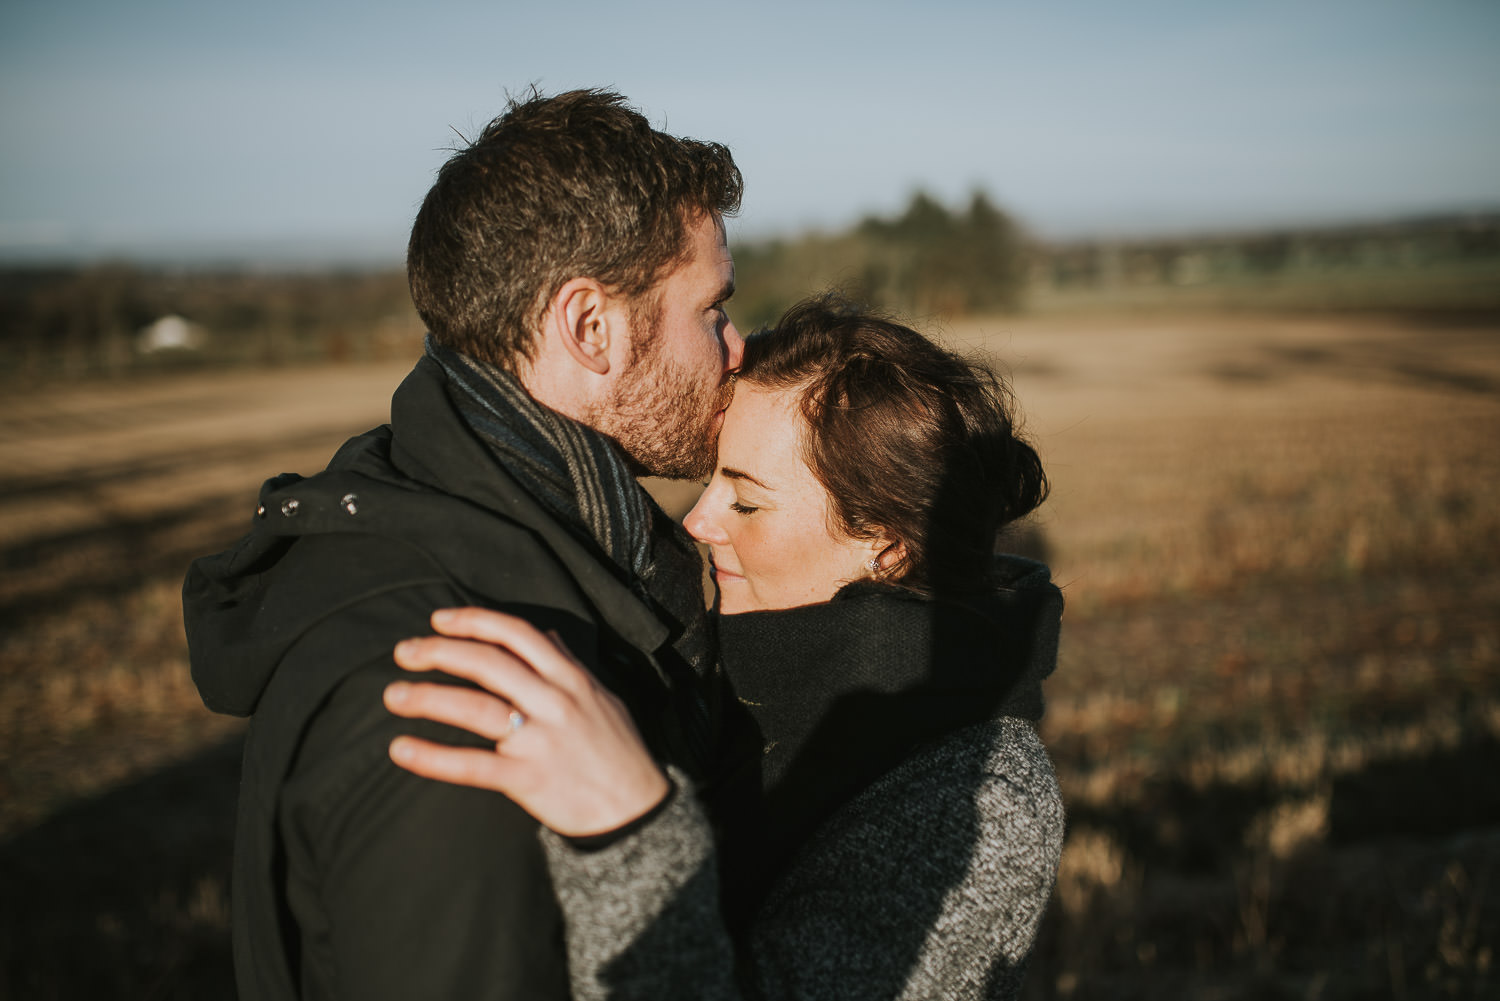 man kissing woman on the forehead in a field